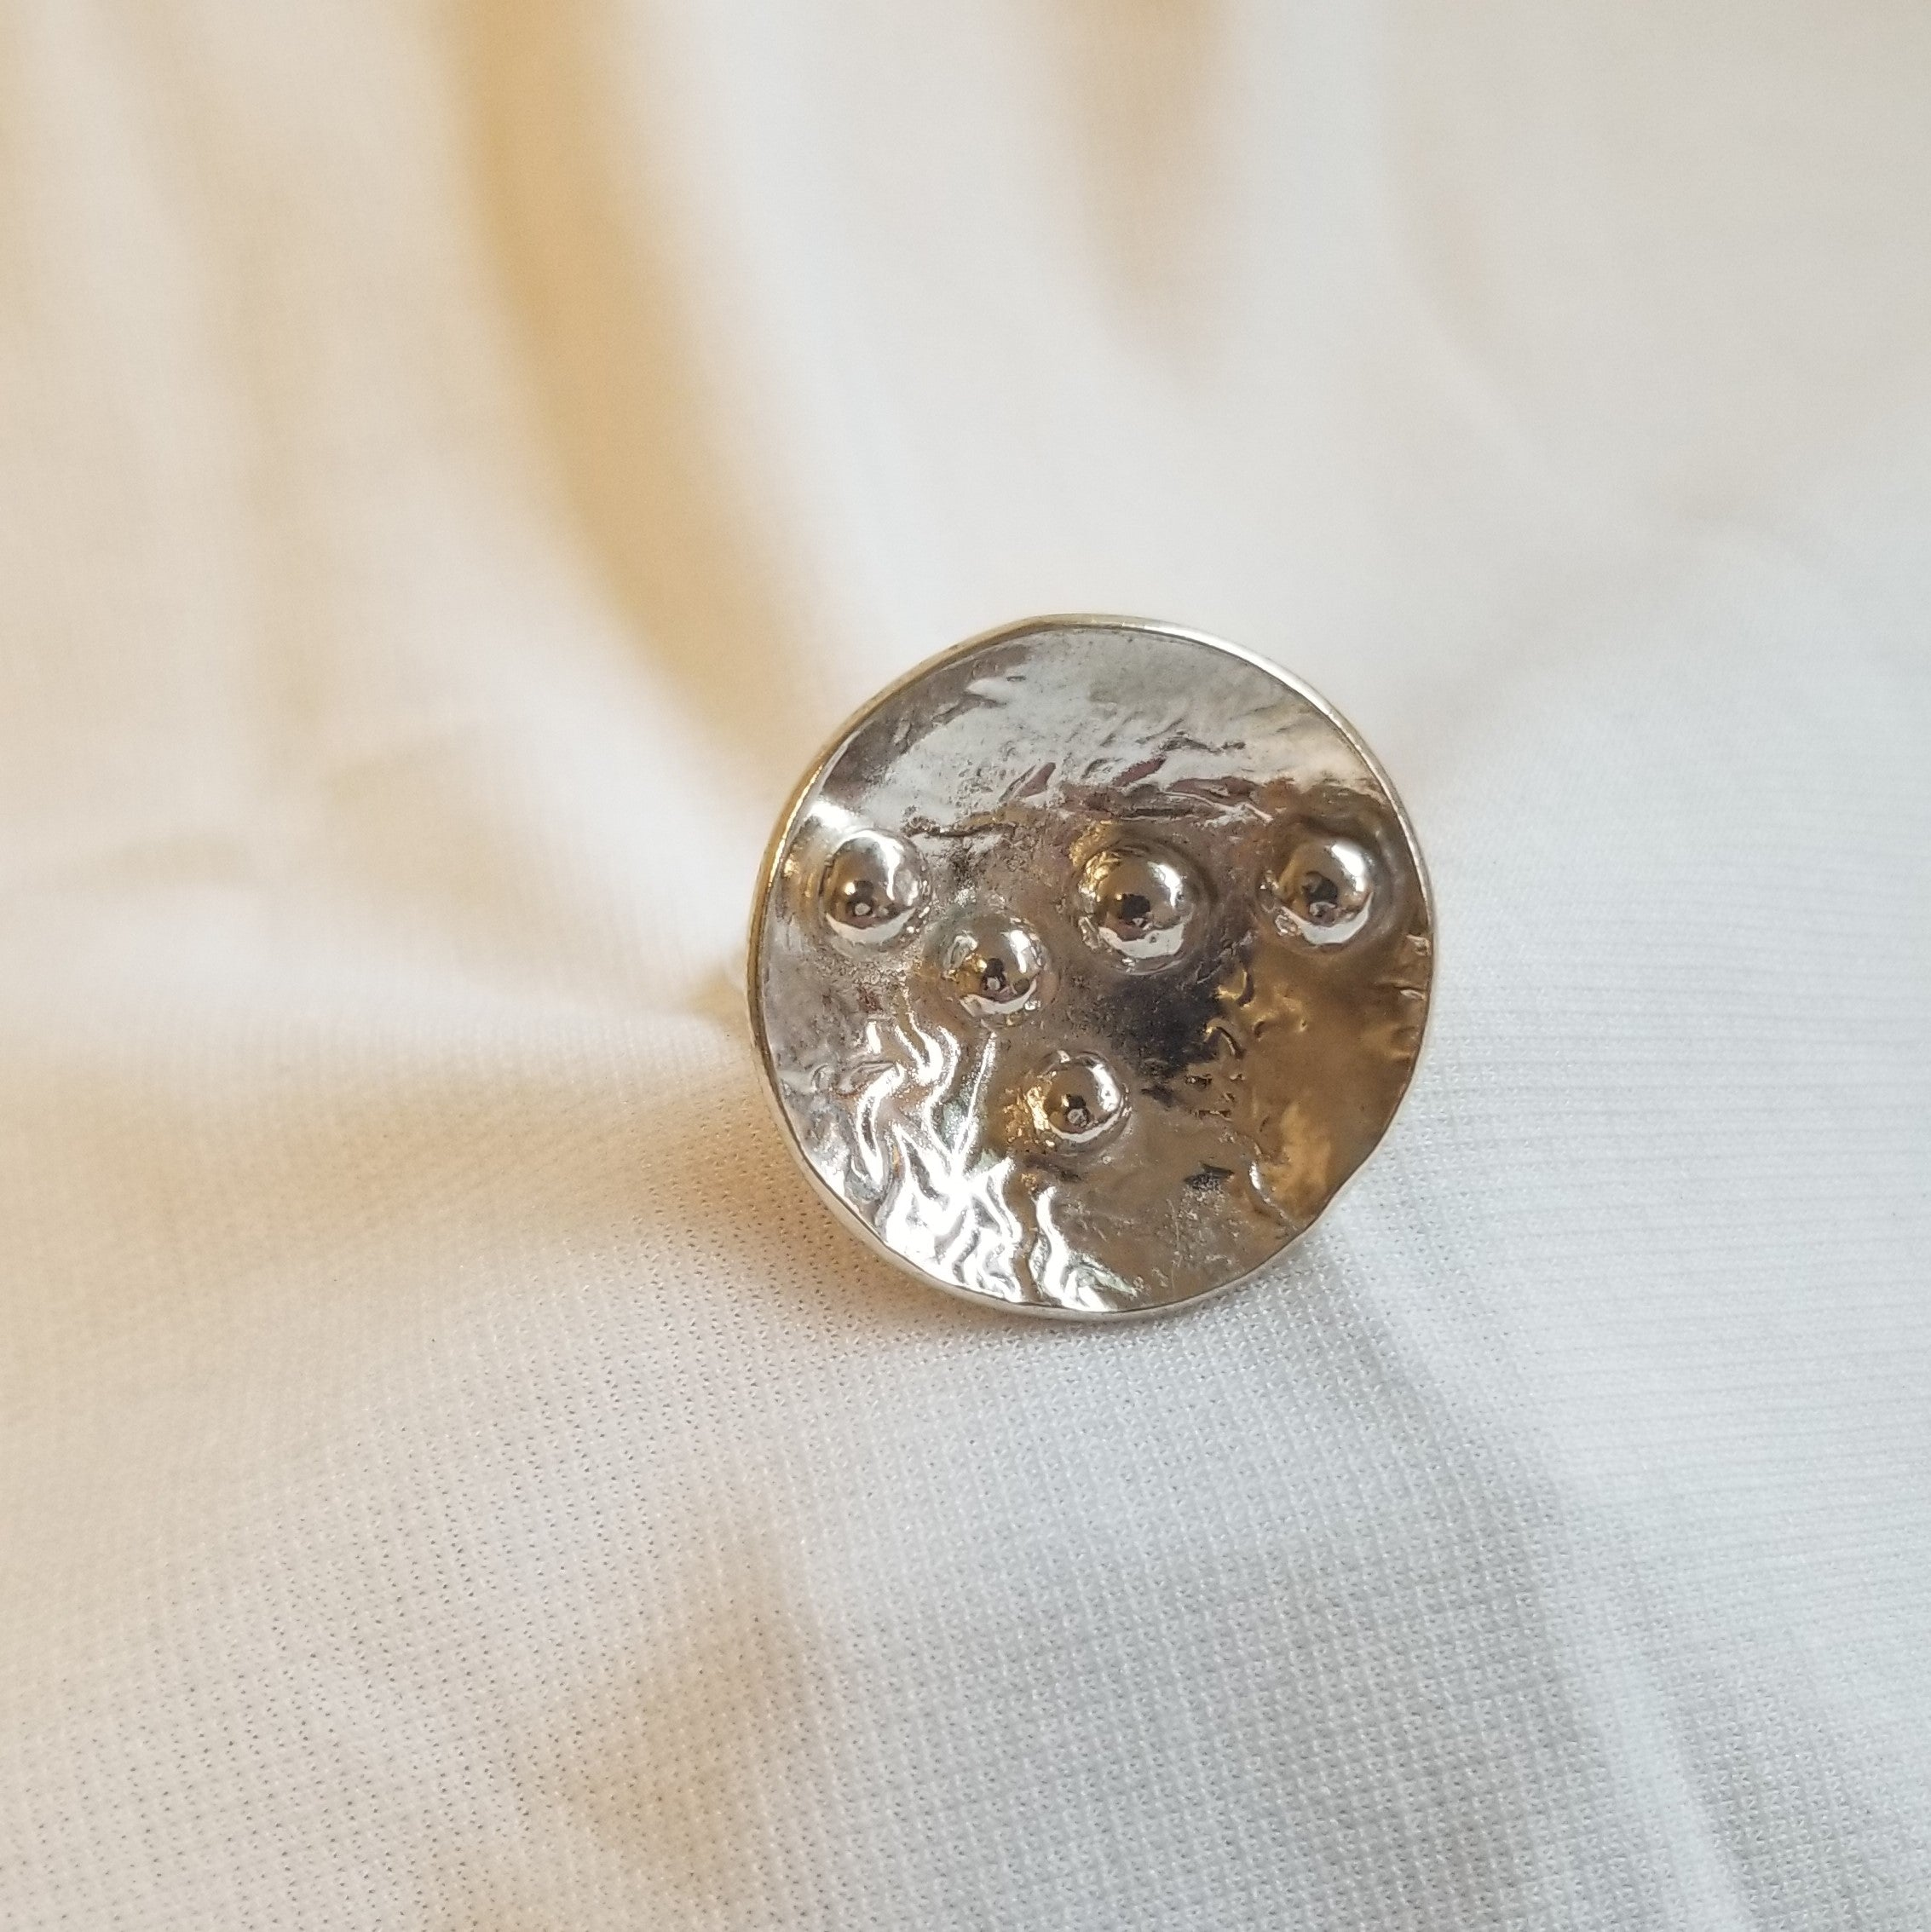 Concaved Circle Ring with ball design